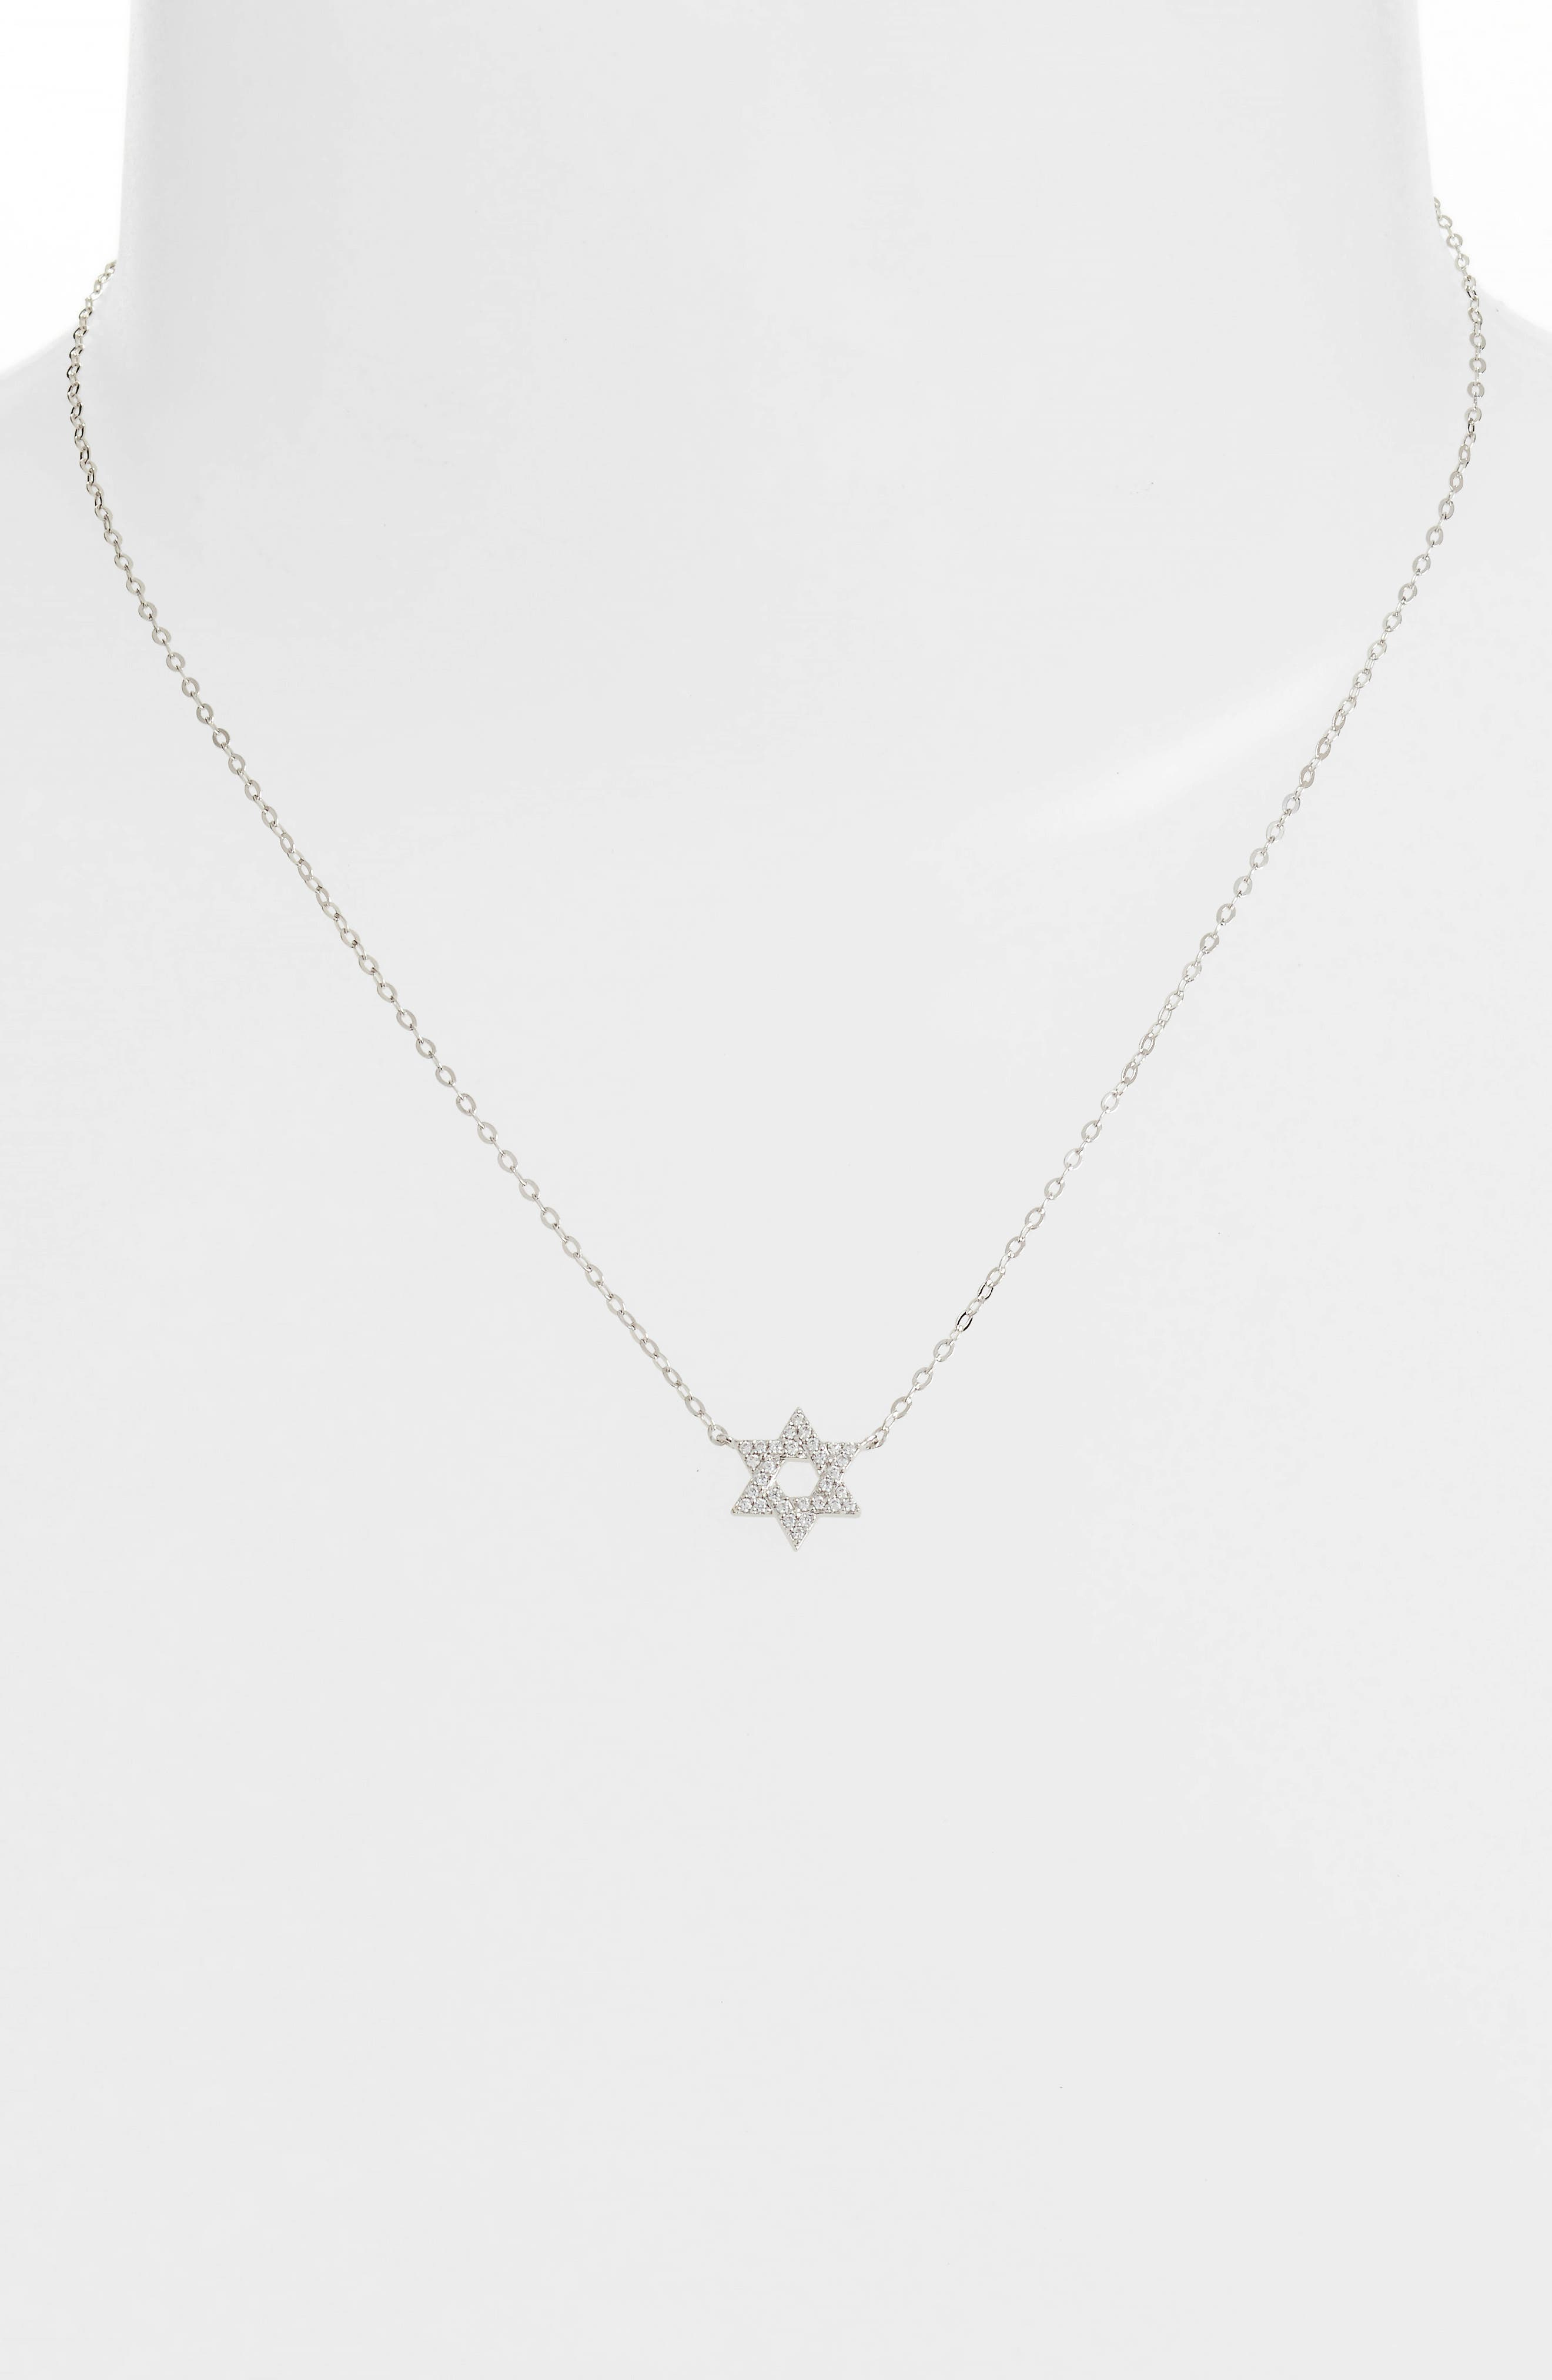 Reminisce Star of David Pendant Necklace,                             Alternate thumbnail 2, color,                             Silver